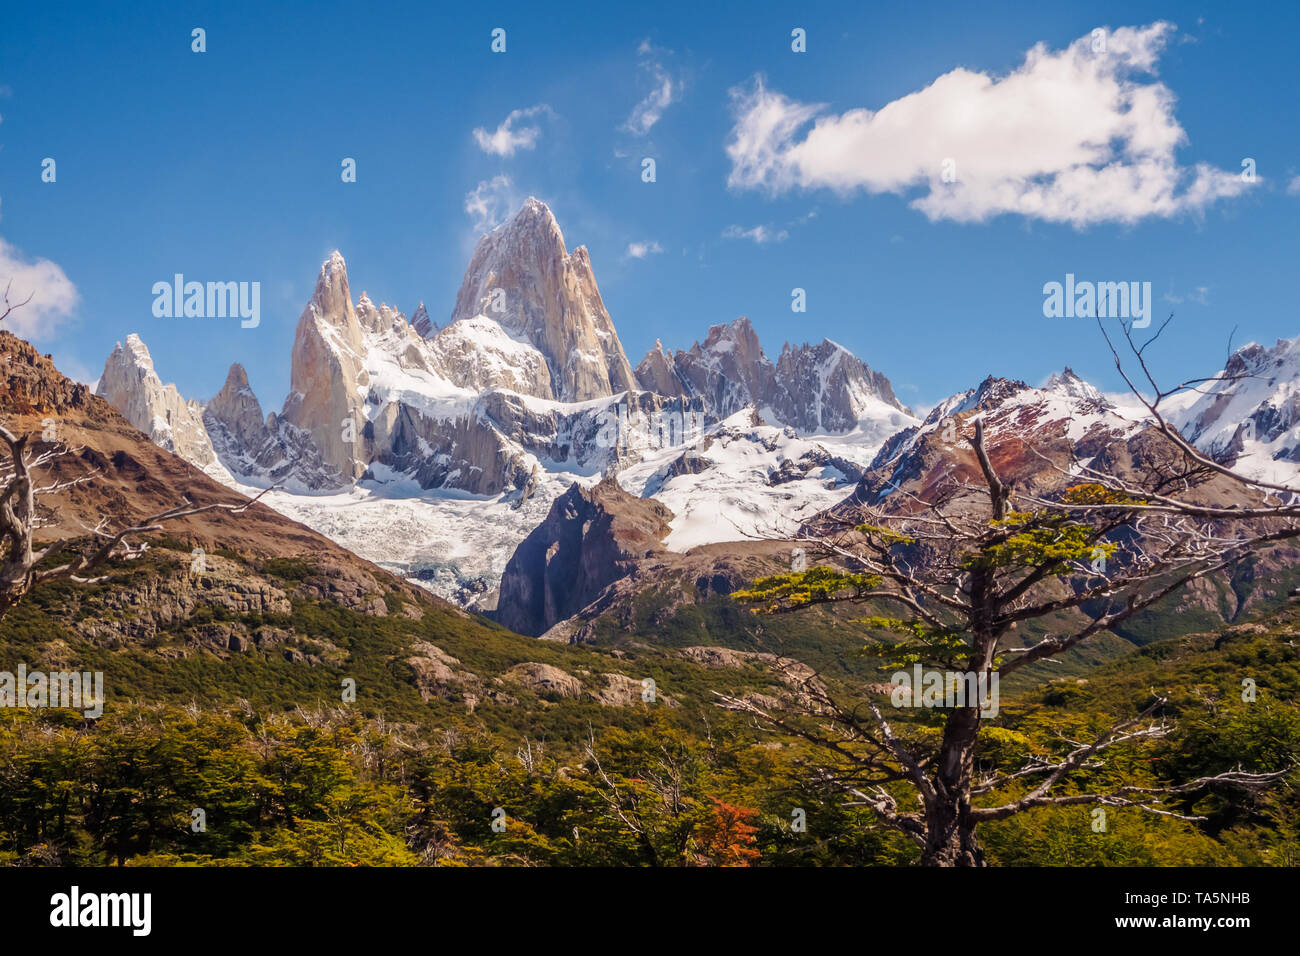 Mount Fitz Roy in the Glacier National Park on a cloudy day with some clouds. El Chalten the Andes mountain range - Stock Image